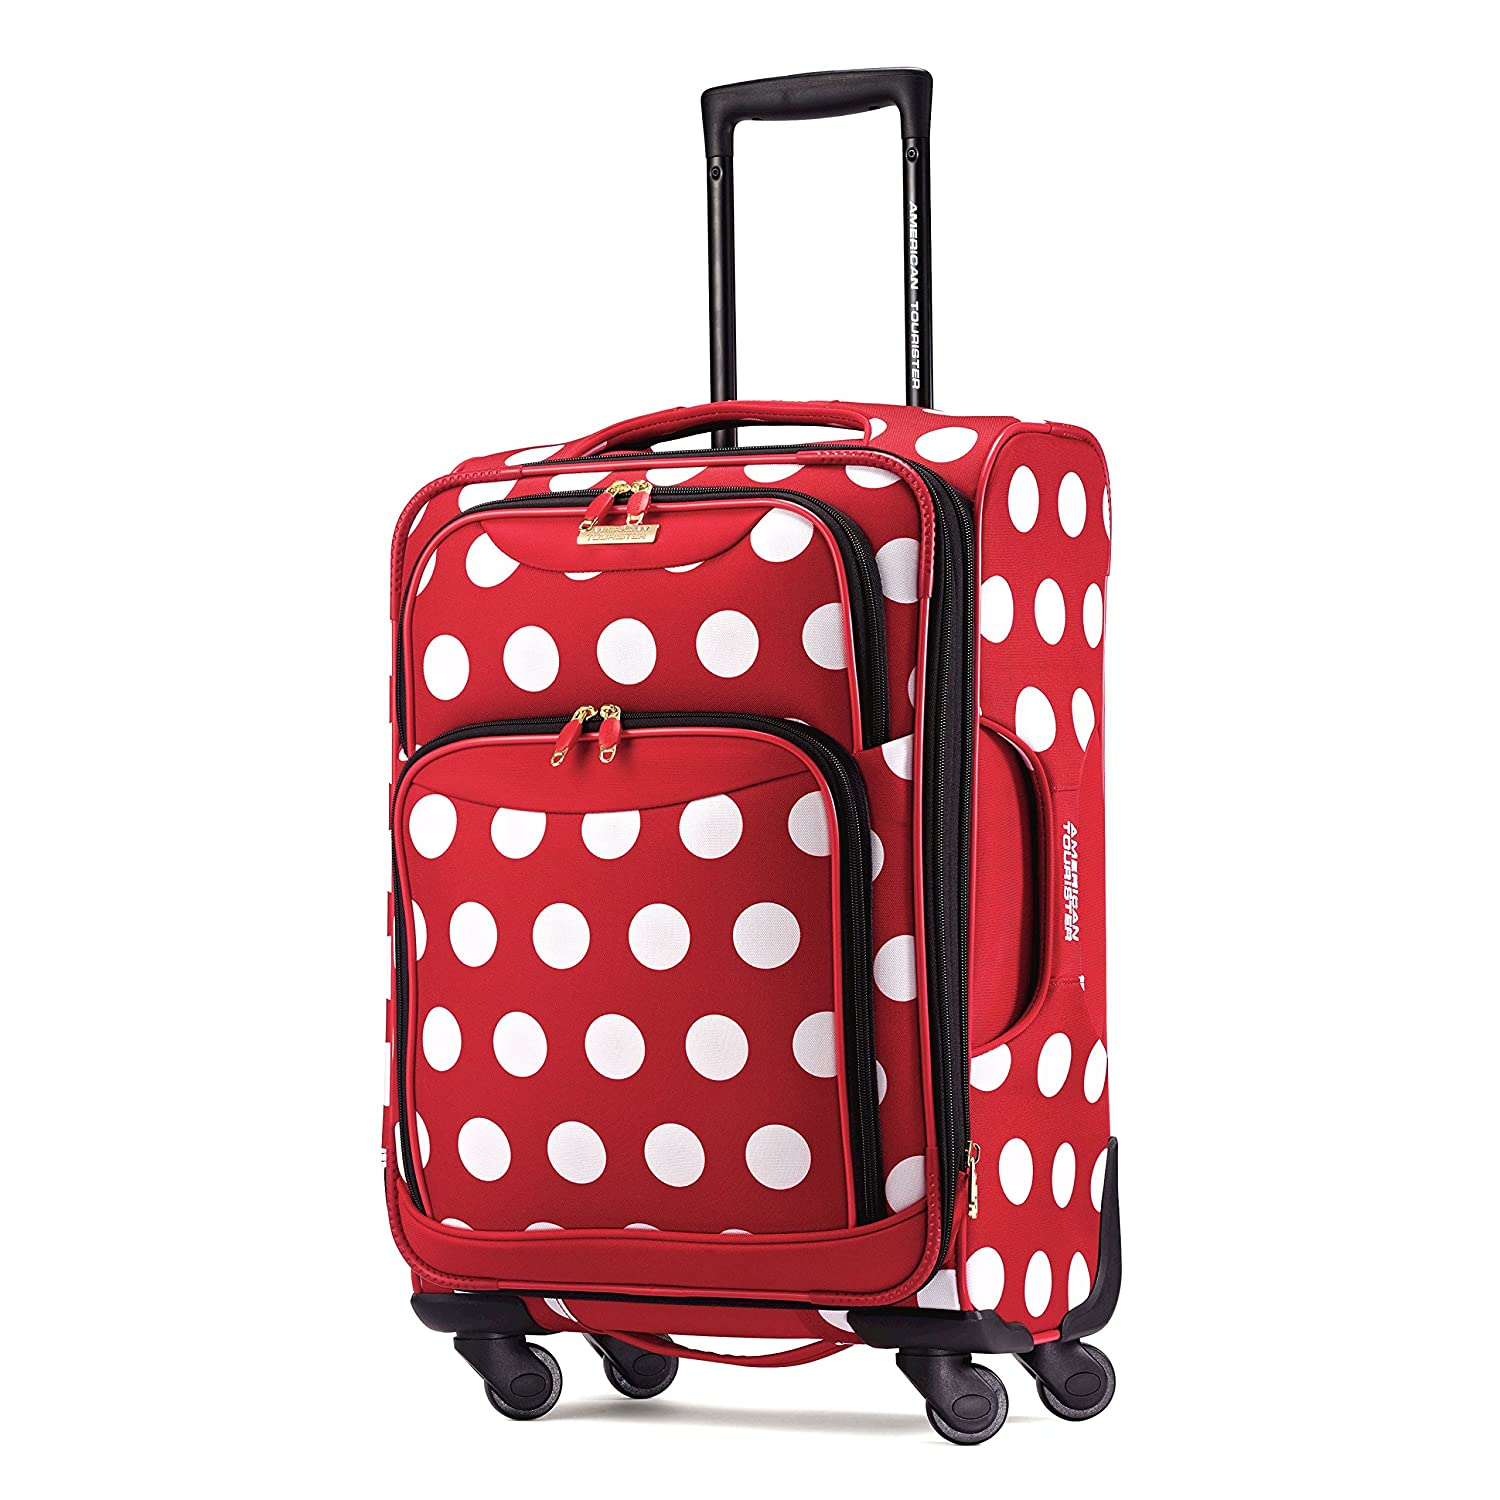 American Tourister 21 Inch, Minnie Mouse Polka Dot